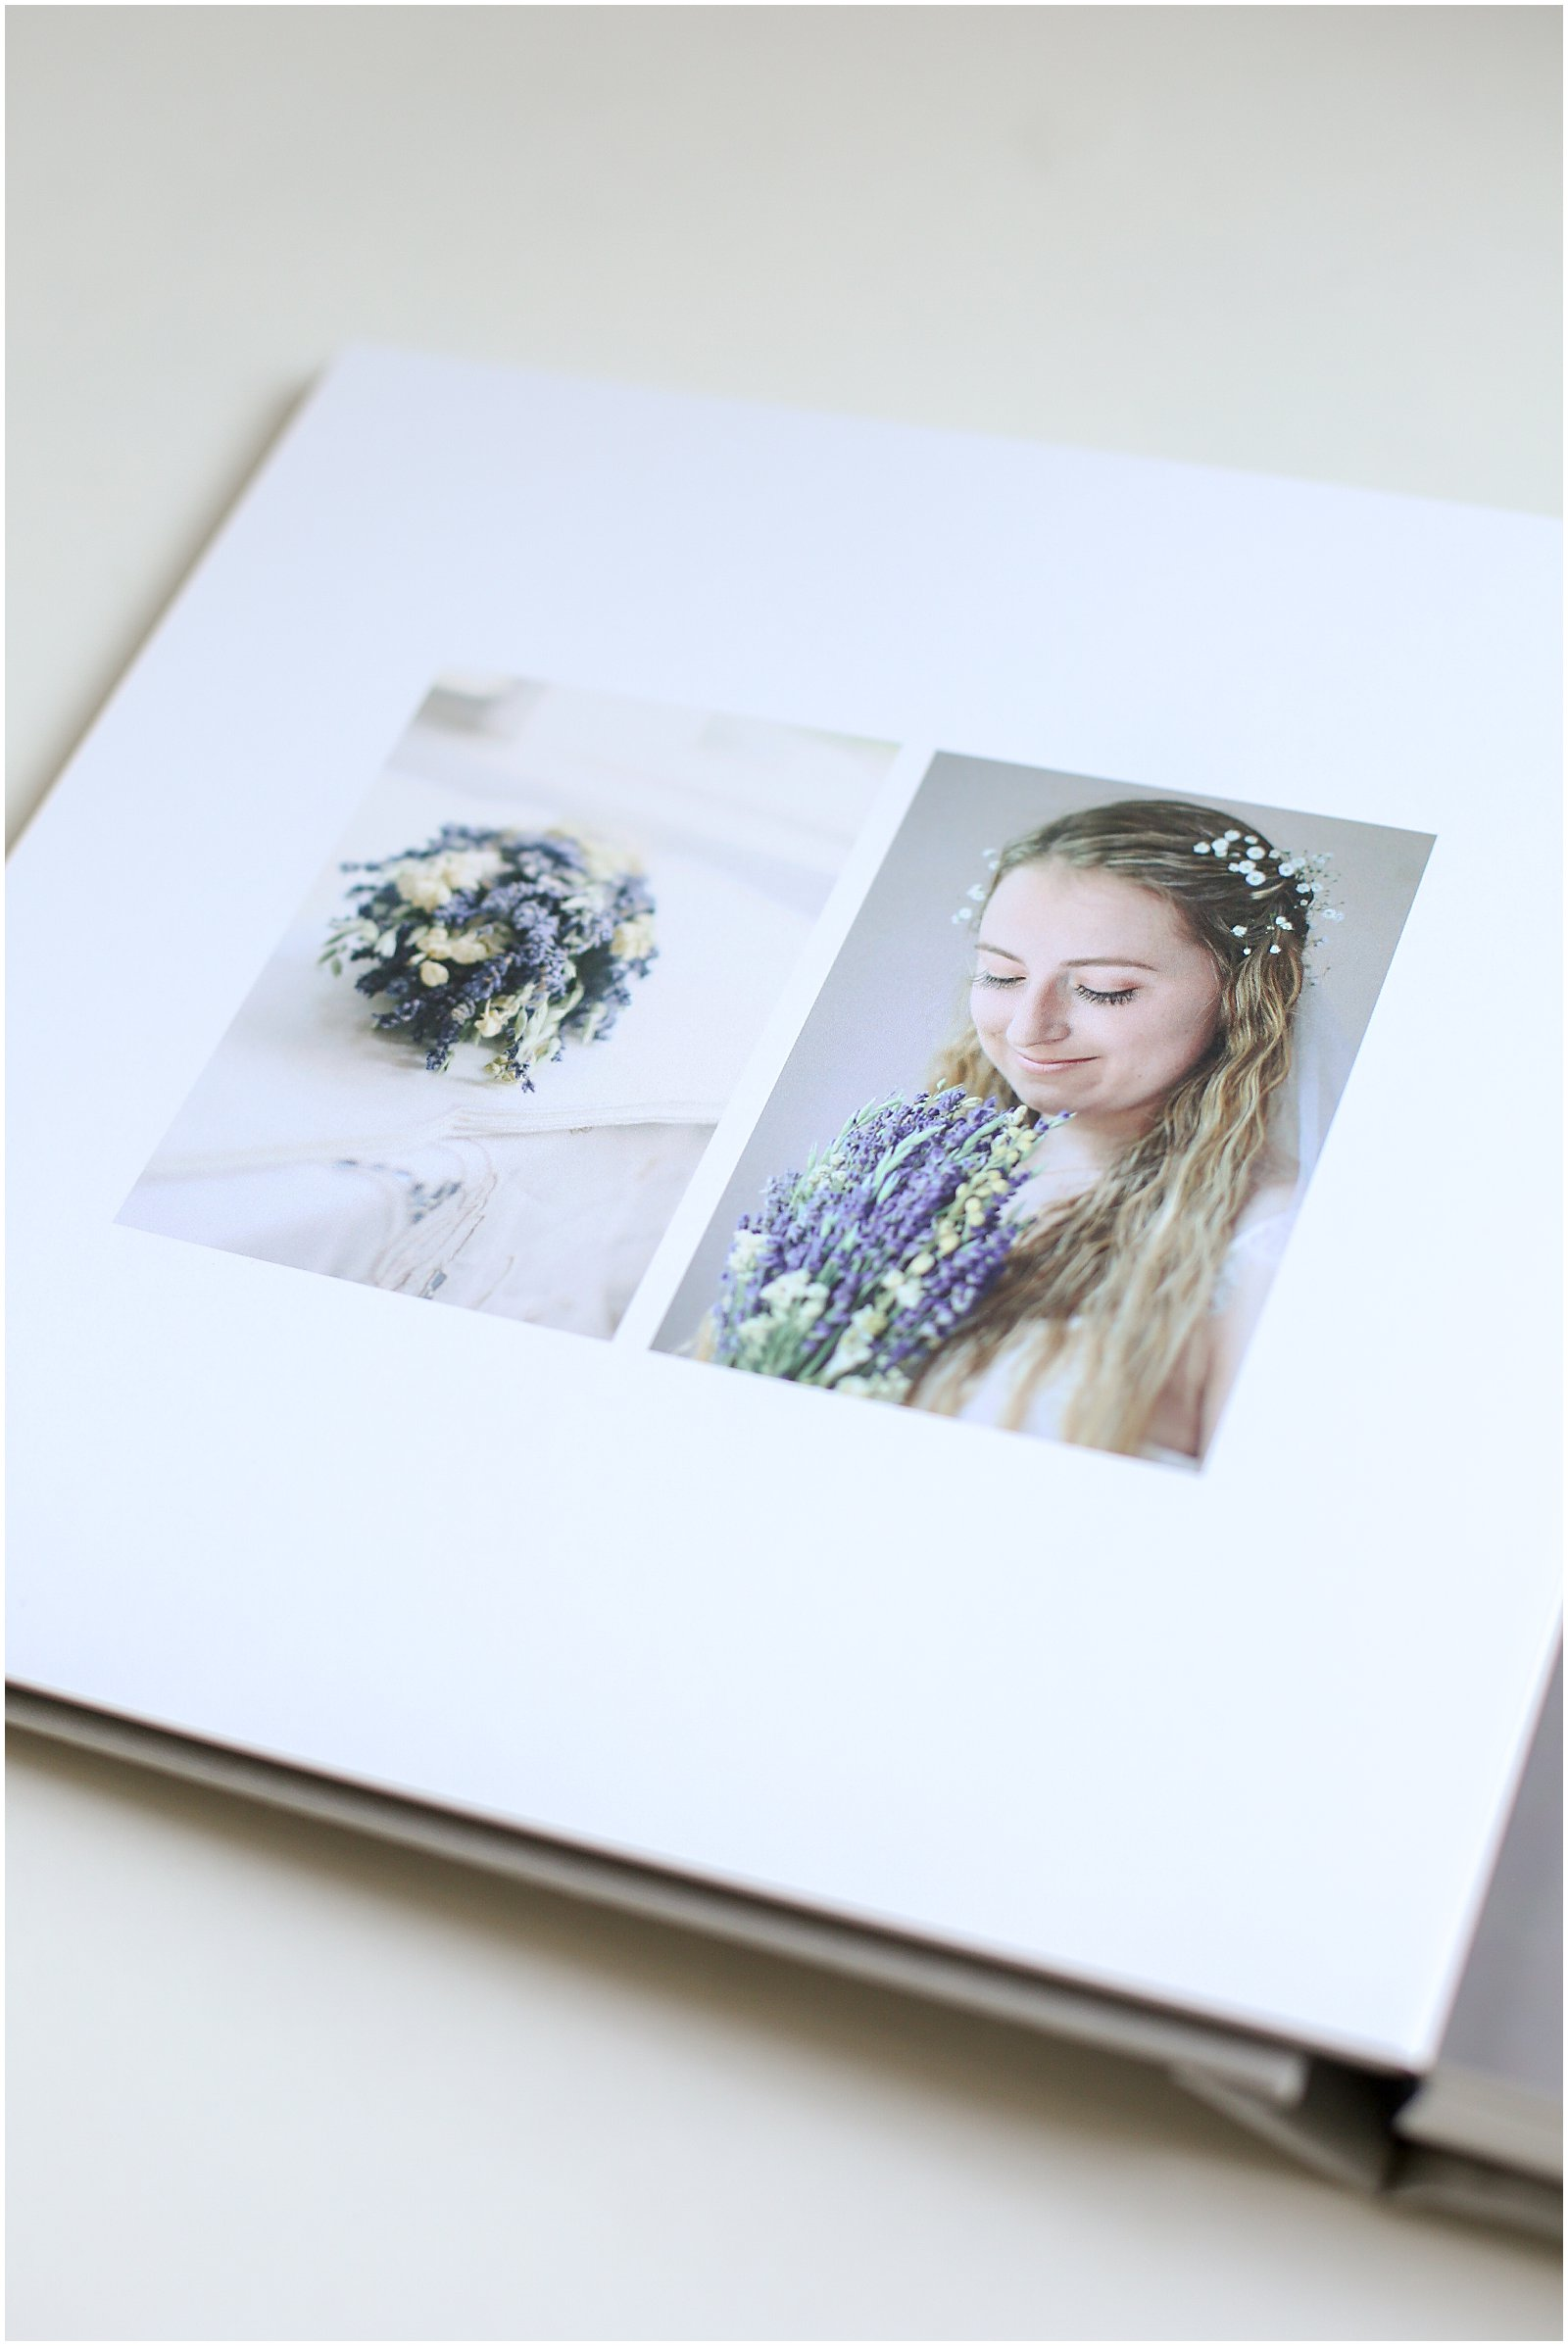 Helena Woods anniversary wedding tradition with albums and letters